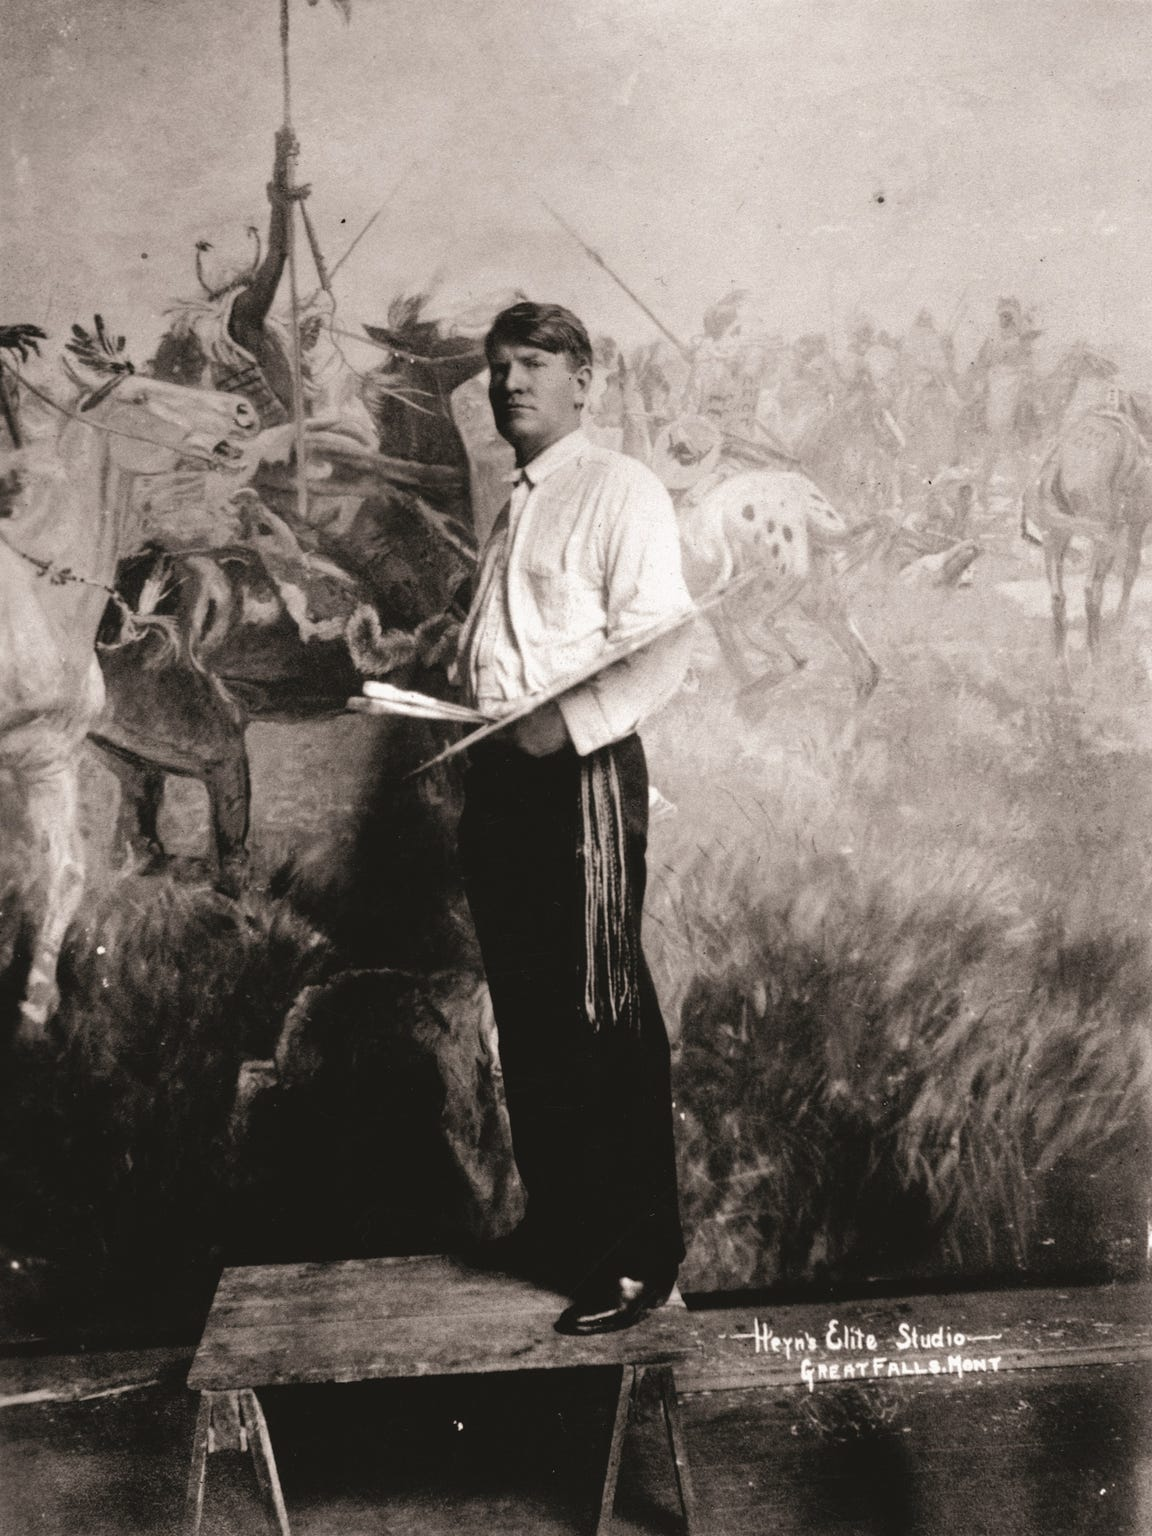 """Charlie Russell was just gaining ground as an artist in 1889. Twenty-three years later, he posed for this formal portrait in his Great Falls studio in 1912 while he was working on """"Lewis & Clark Meeting Indians at Ross' Hole"""" for the Montana State Capitol."""